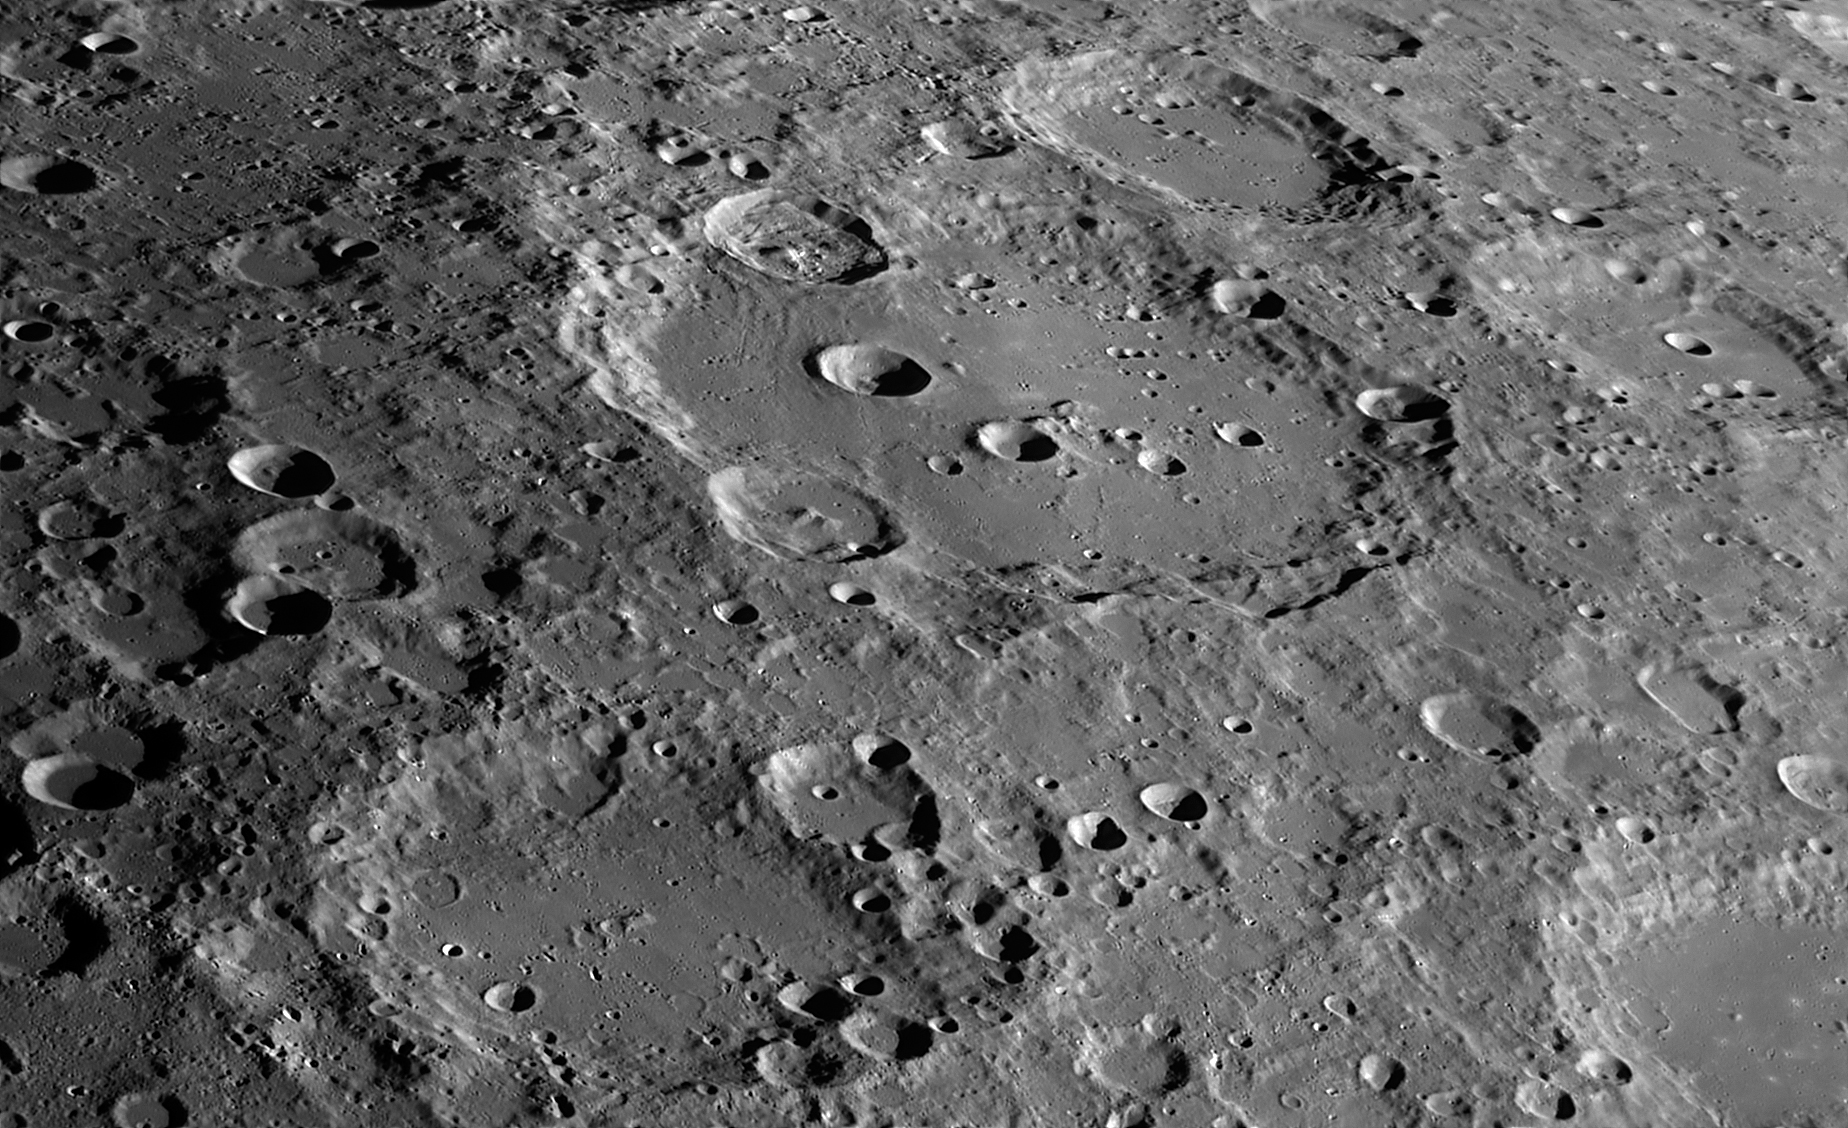 Clavius_C14-B1920-red-6Aug2015-3h40mnUT-